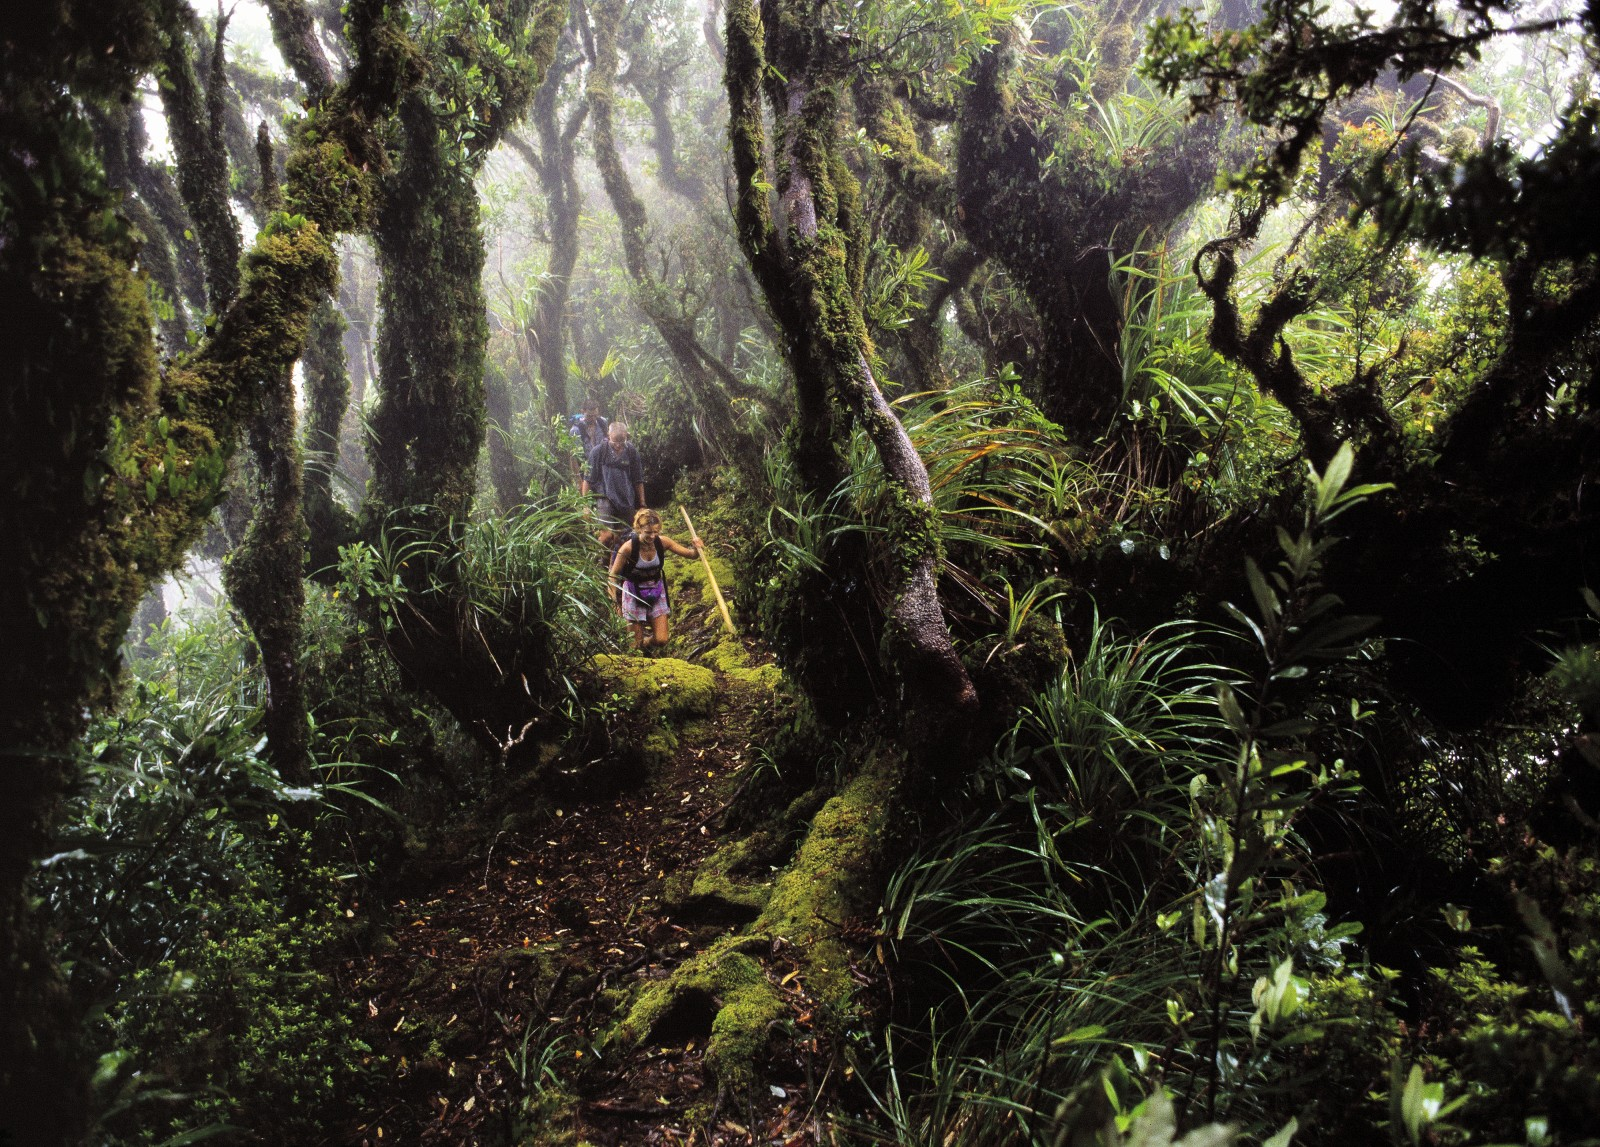 Clouds often shroud Hauturu's 700 m-higfh peaks, which are covered with a stunted, moisture-loving cloud forest rich in southern rata, tawa, tawhero, Westland quintinia and tawari. Epiphytic ferns, mosses and liverworts hang from every tree. Some 370 species of plant occur on the island, including 90 kinds of fern.